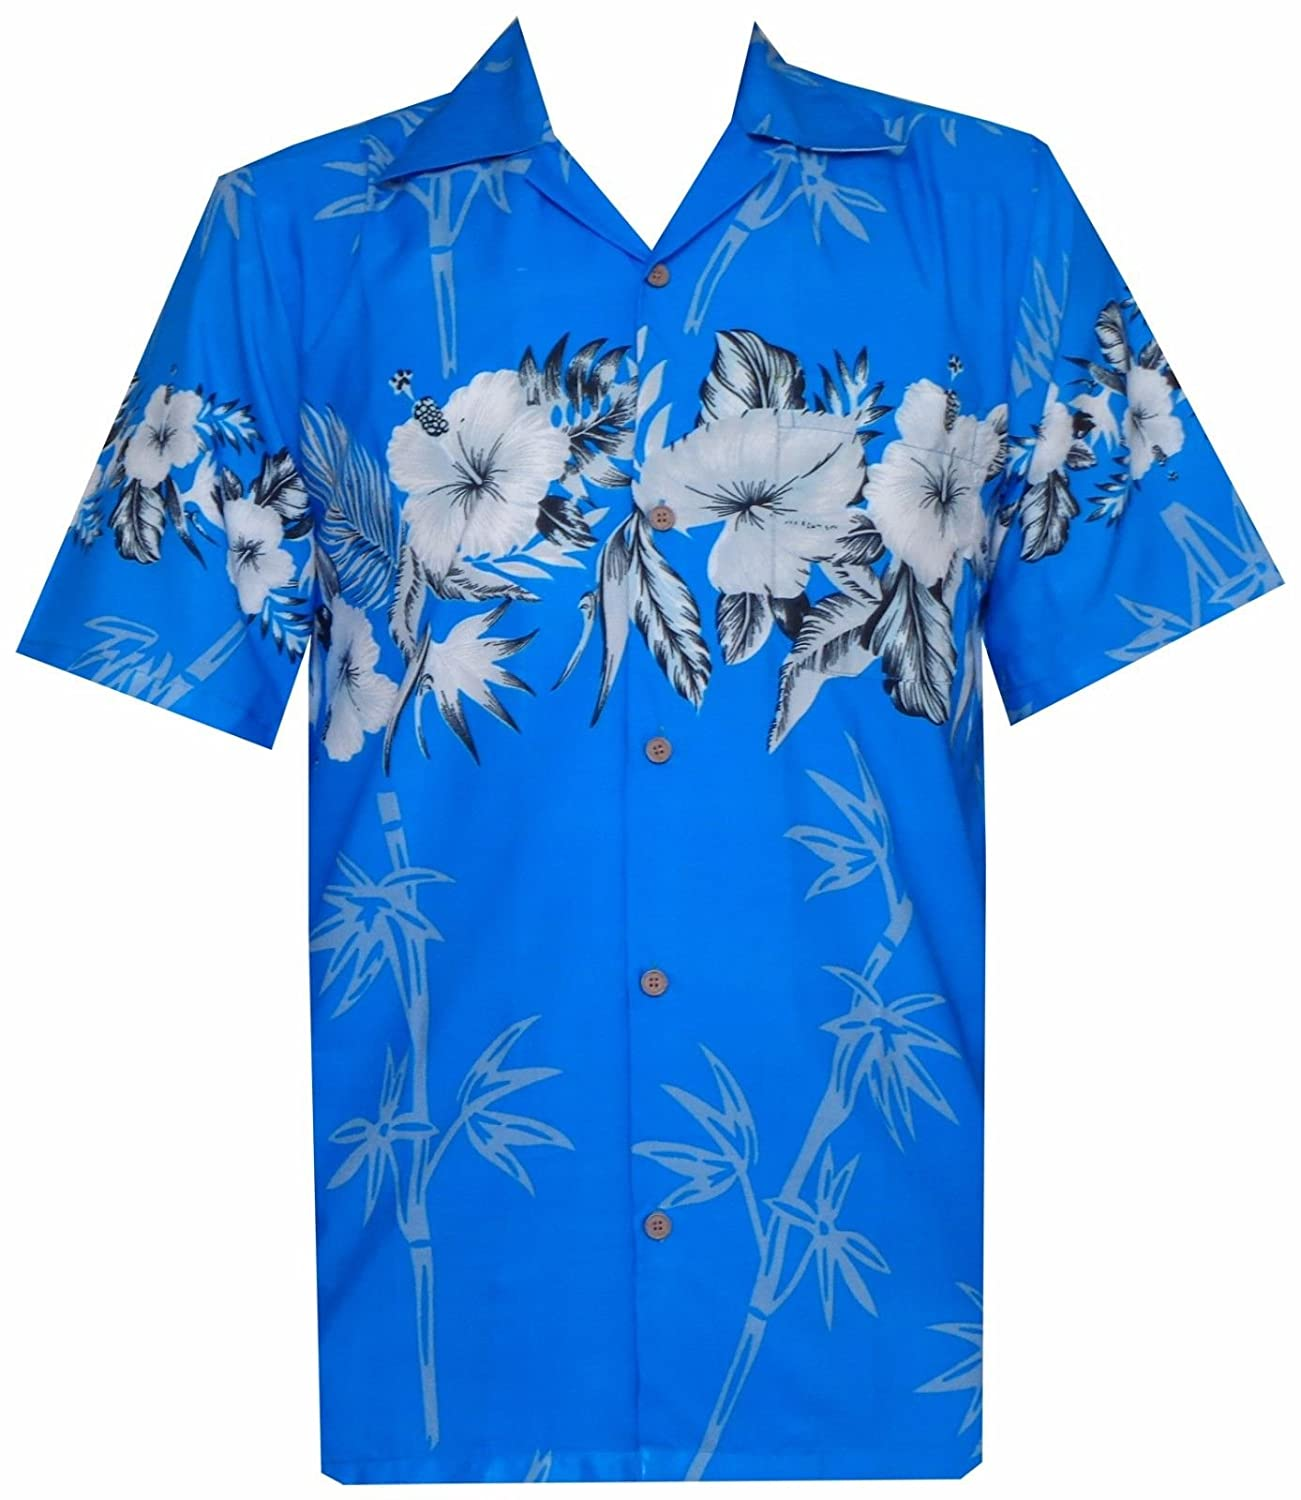 1ad23e6c Alvish Hawaiian Shirts Mens Bamboo Tree Print Beach Aloha Party Holiday:  Amazon.ca: Clothing & Accessories